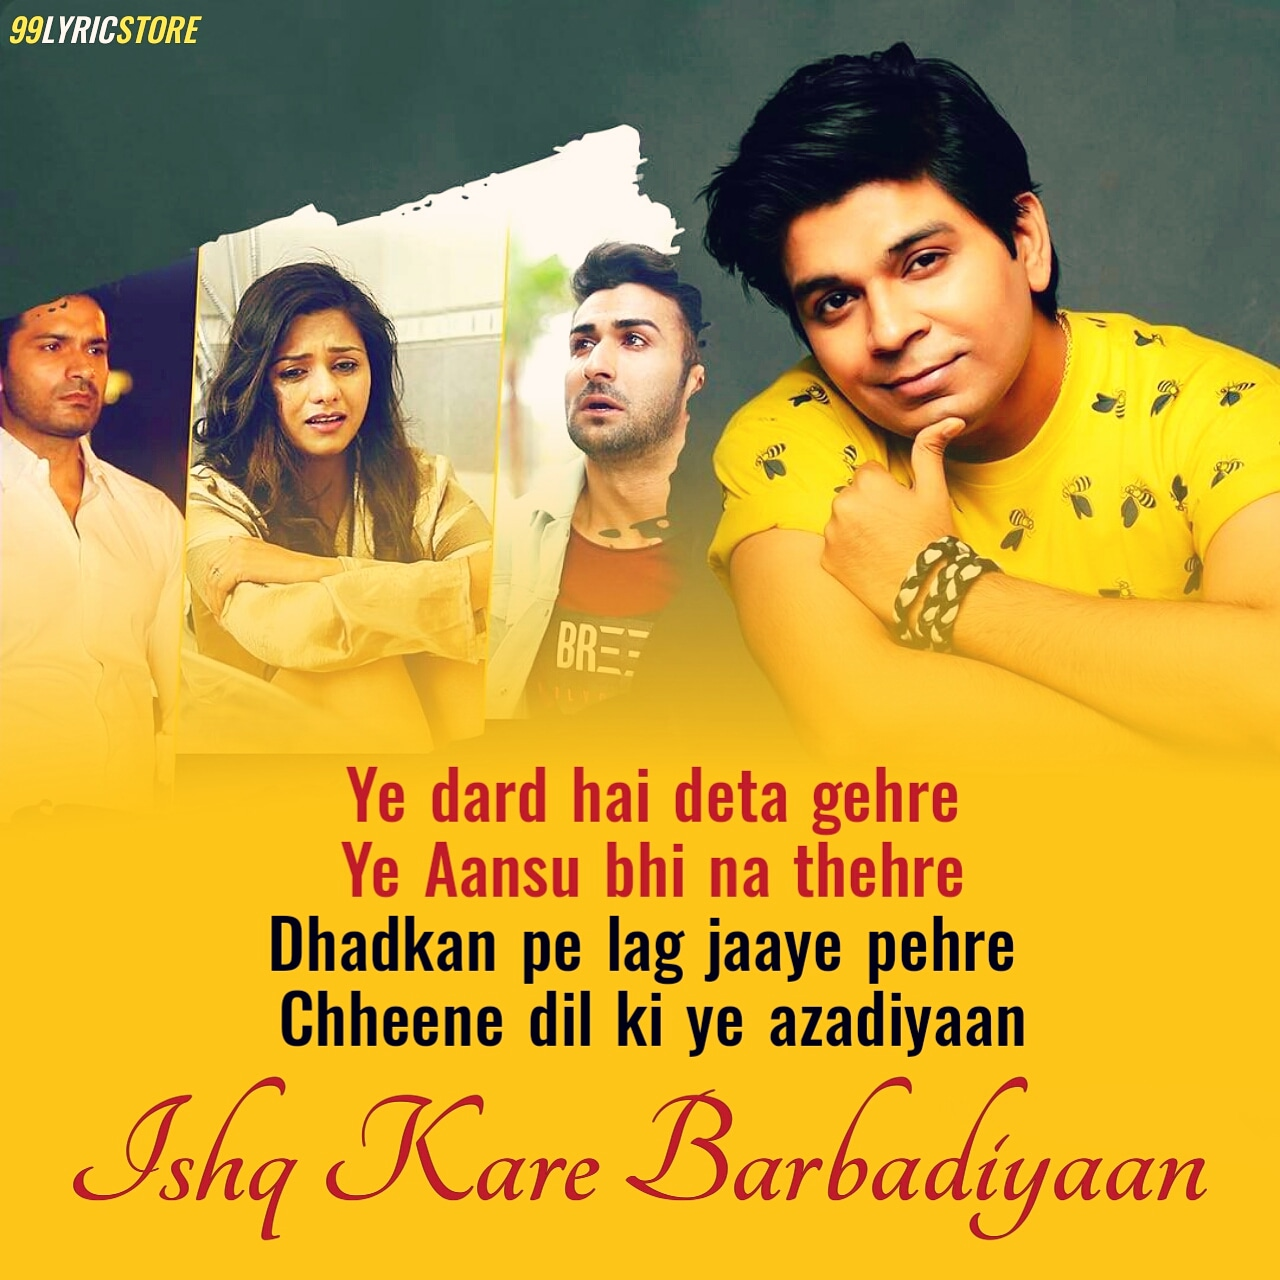 Ishq Kare Barbadiyaan Hindi Song Lyrics Sung by Ankit Tiwari